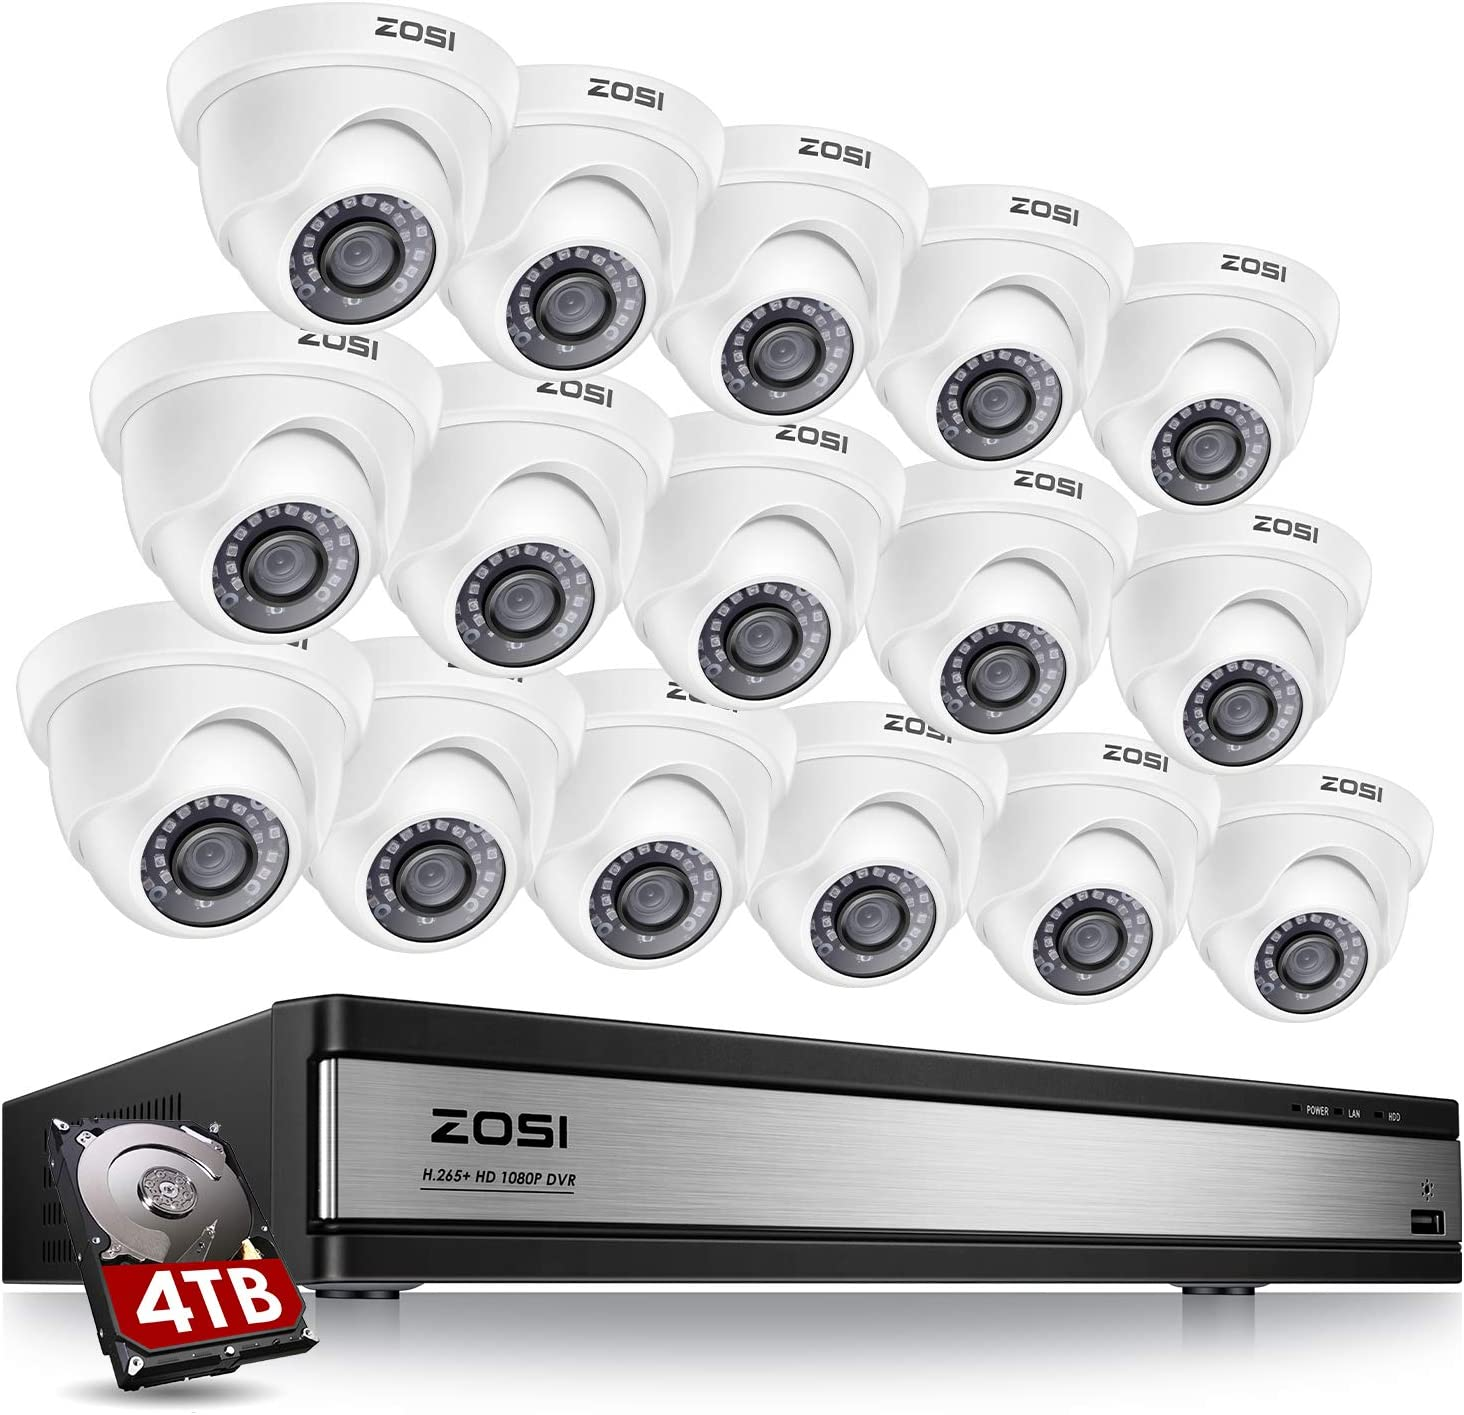 ZOSI H.265+ 1080p 16 Channel Security Camera System,16 Channel CCTV DVR with Hard Drive 4TB and 16 x 1080p Indoor Outdoor Dome Camera, 80ft Night Vision, 105° View Angle, Remote Control, Alert Push